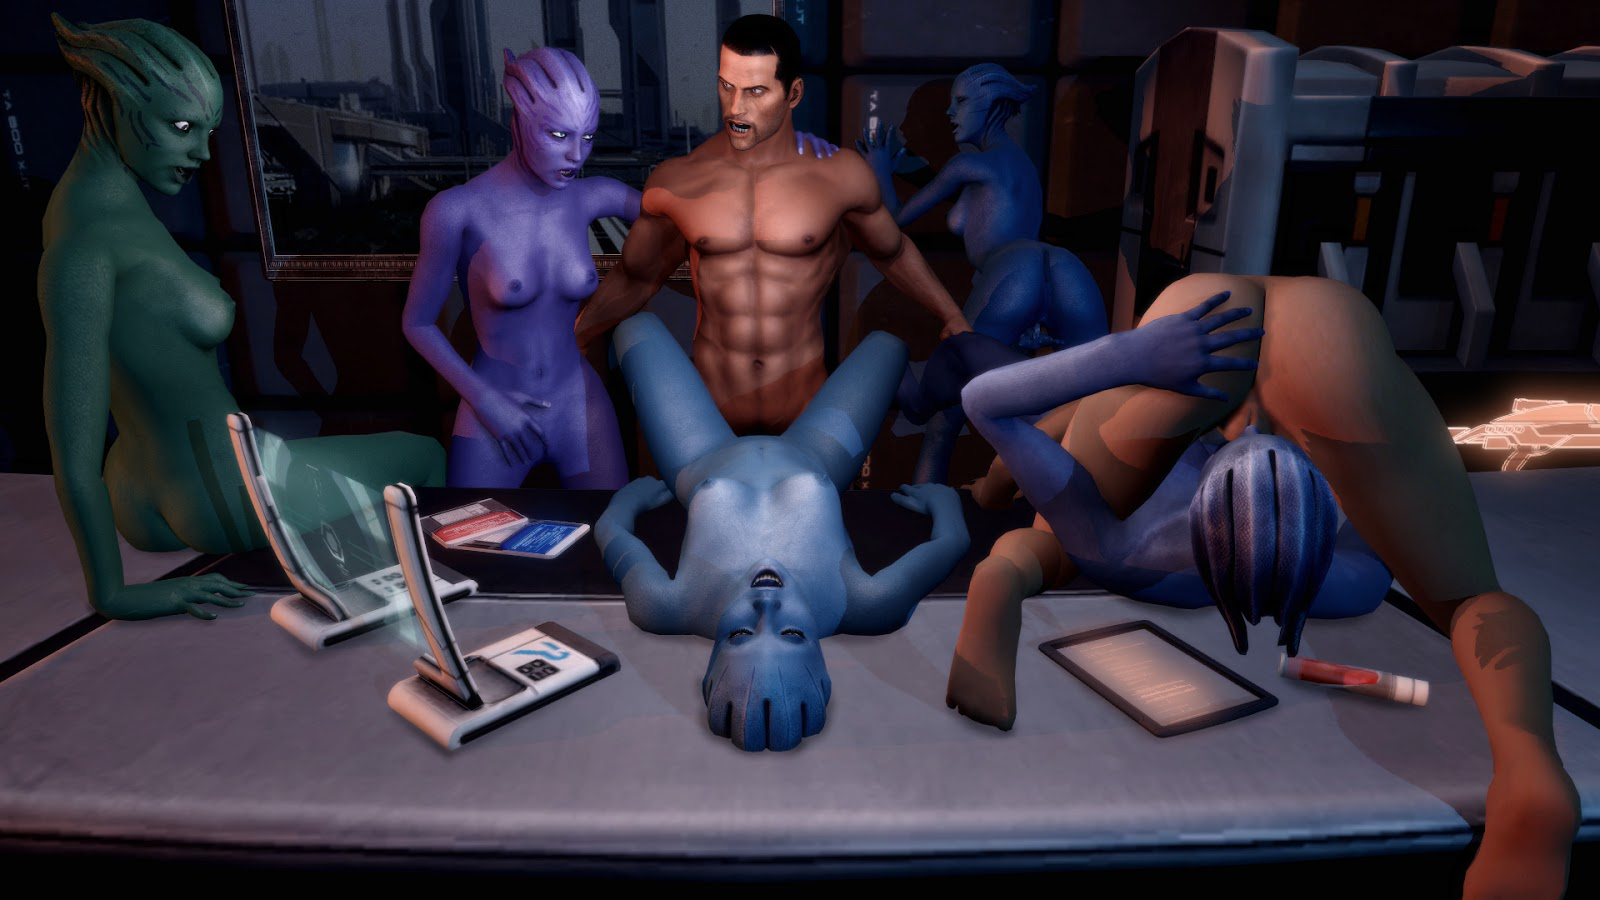 Mass effect the video game porn hentai scene